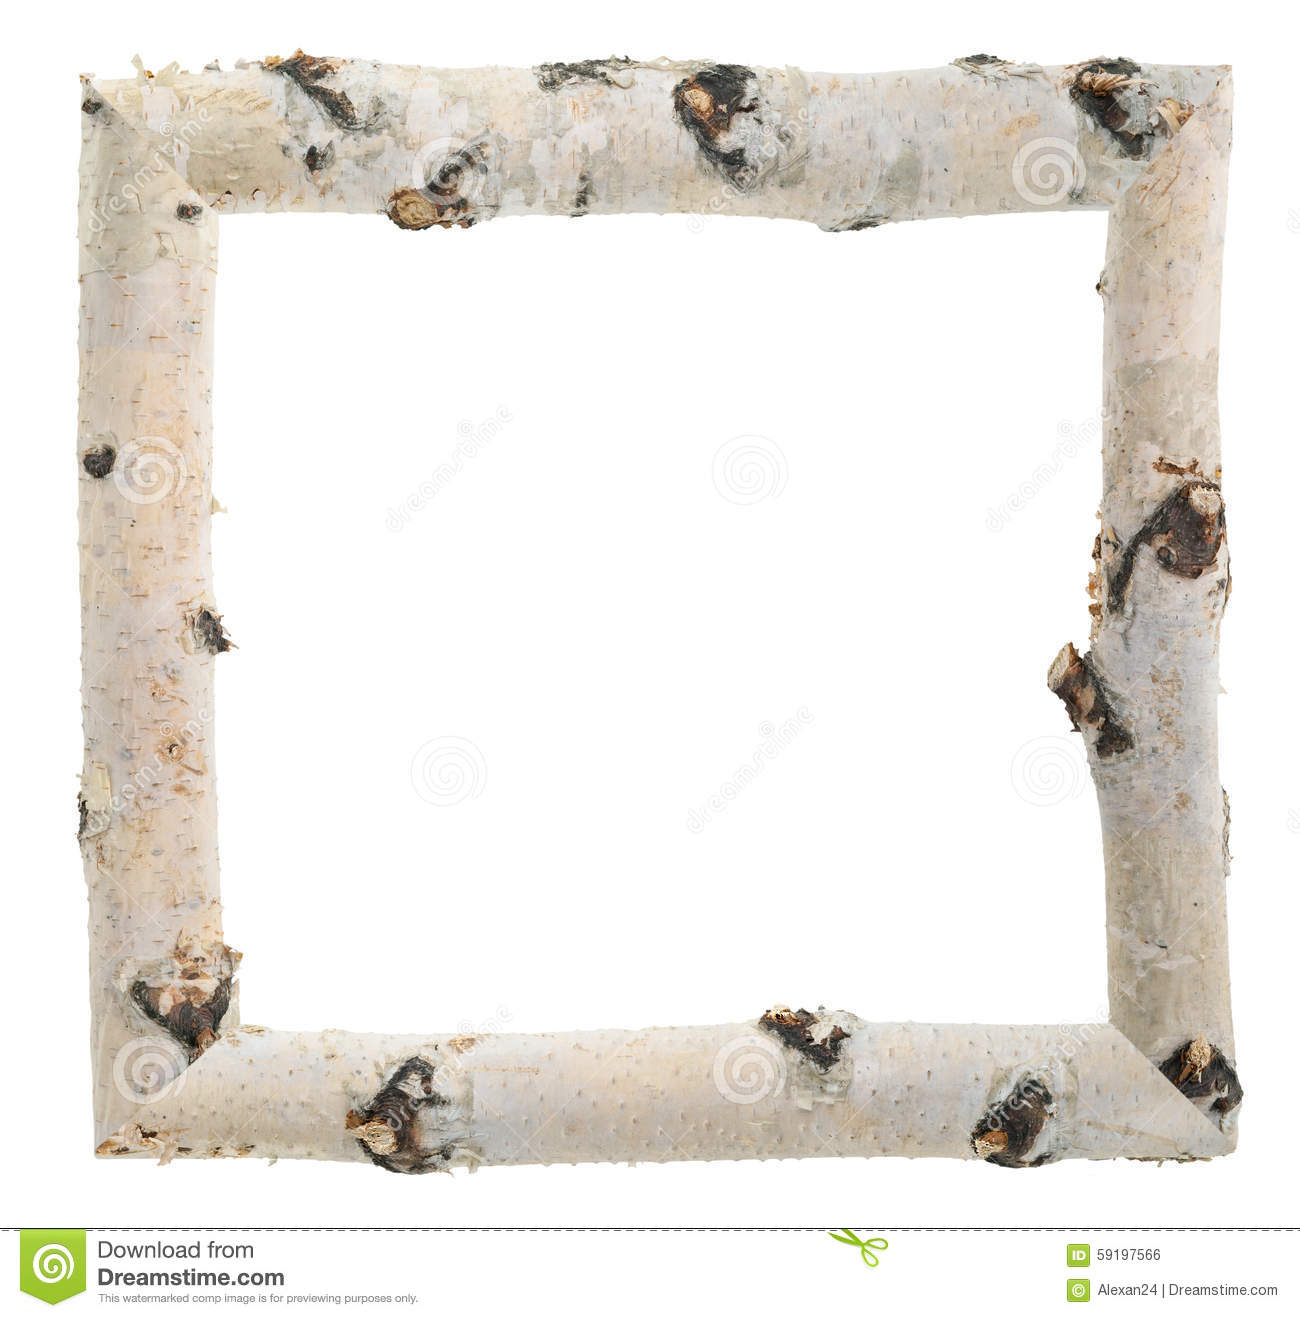 Frame of birch logs stock photo. Image of floral, macro - 59197566